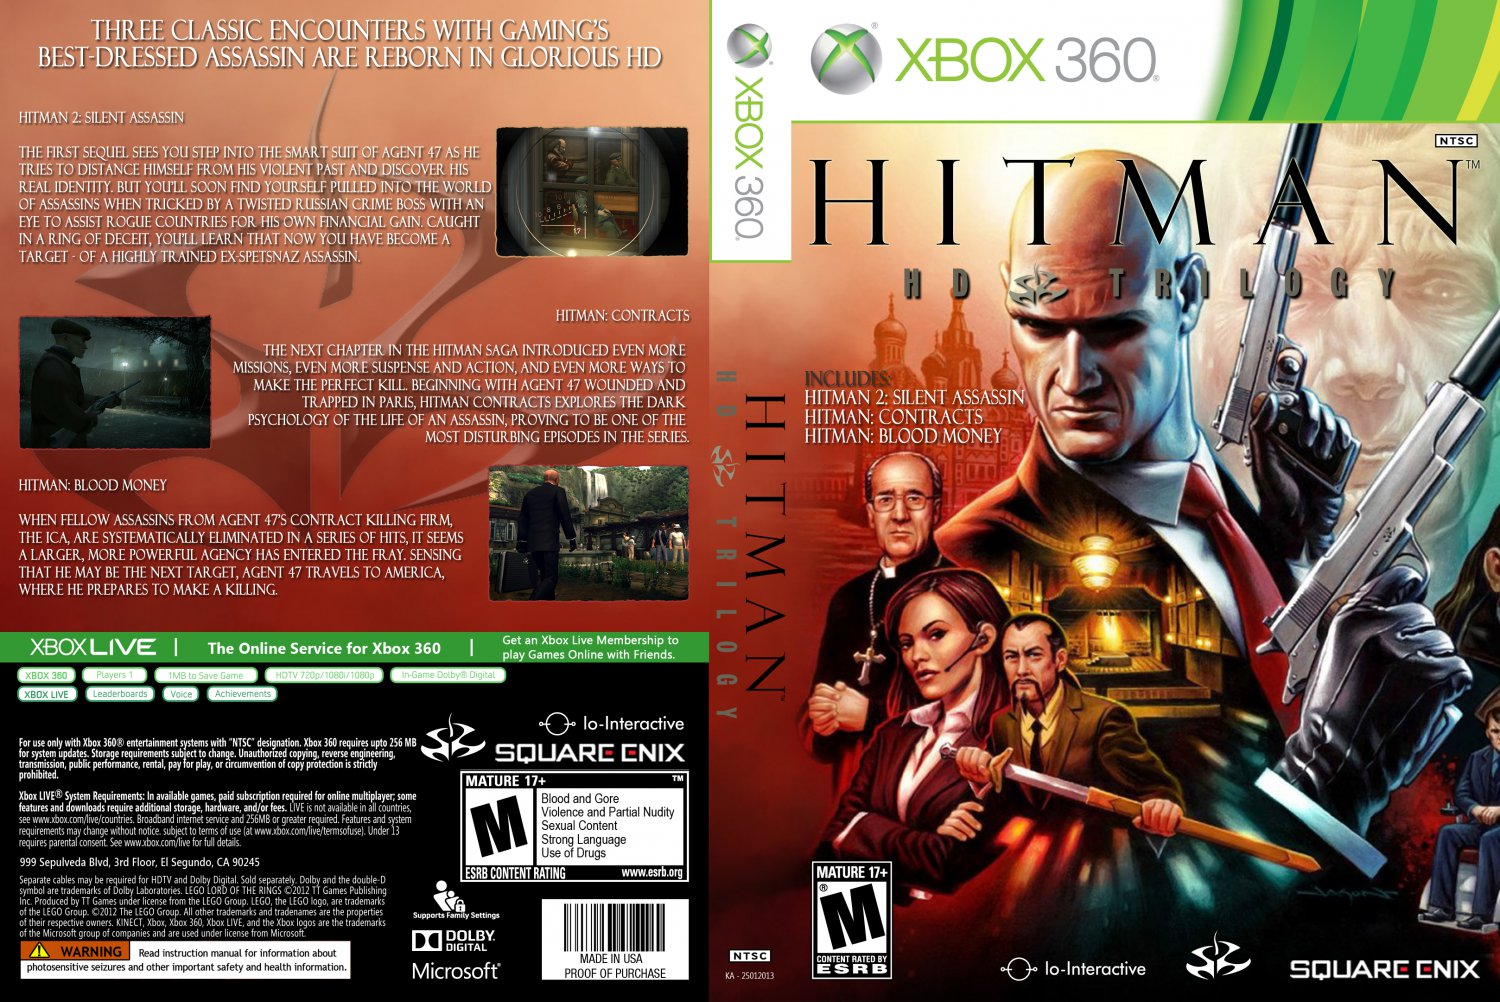 Book Cover Pictures Xbox ~ Hitman hd trilogy xbox game covers